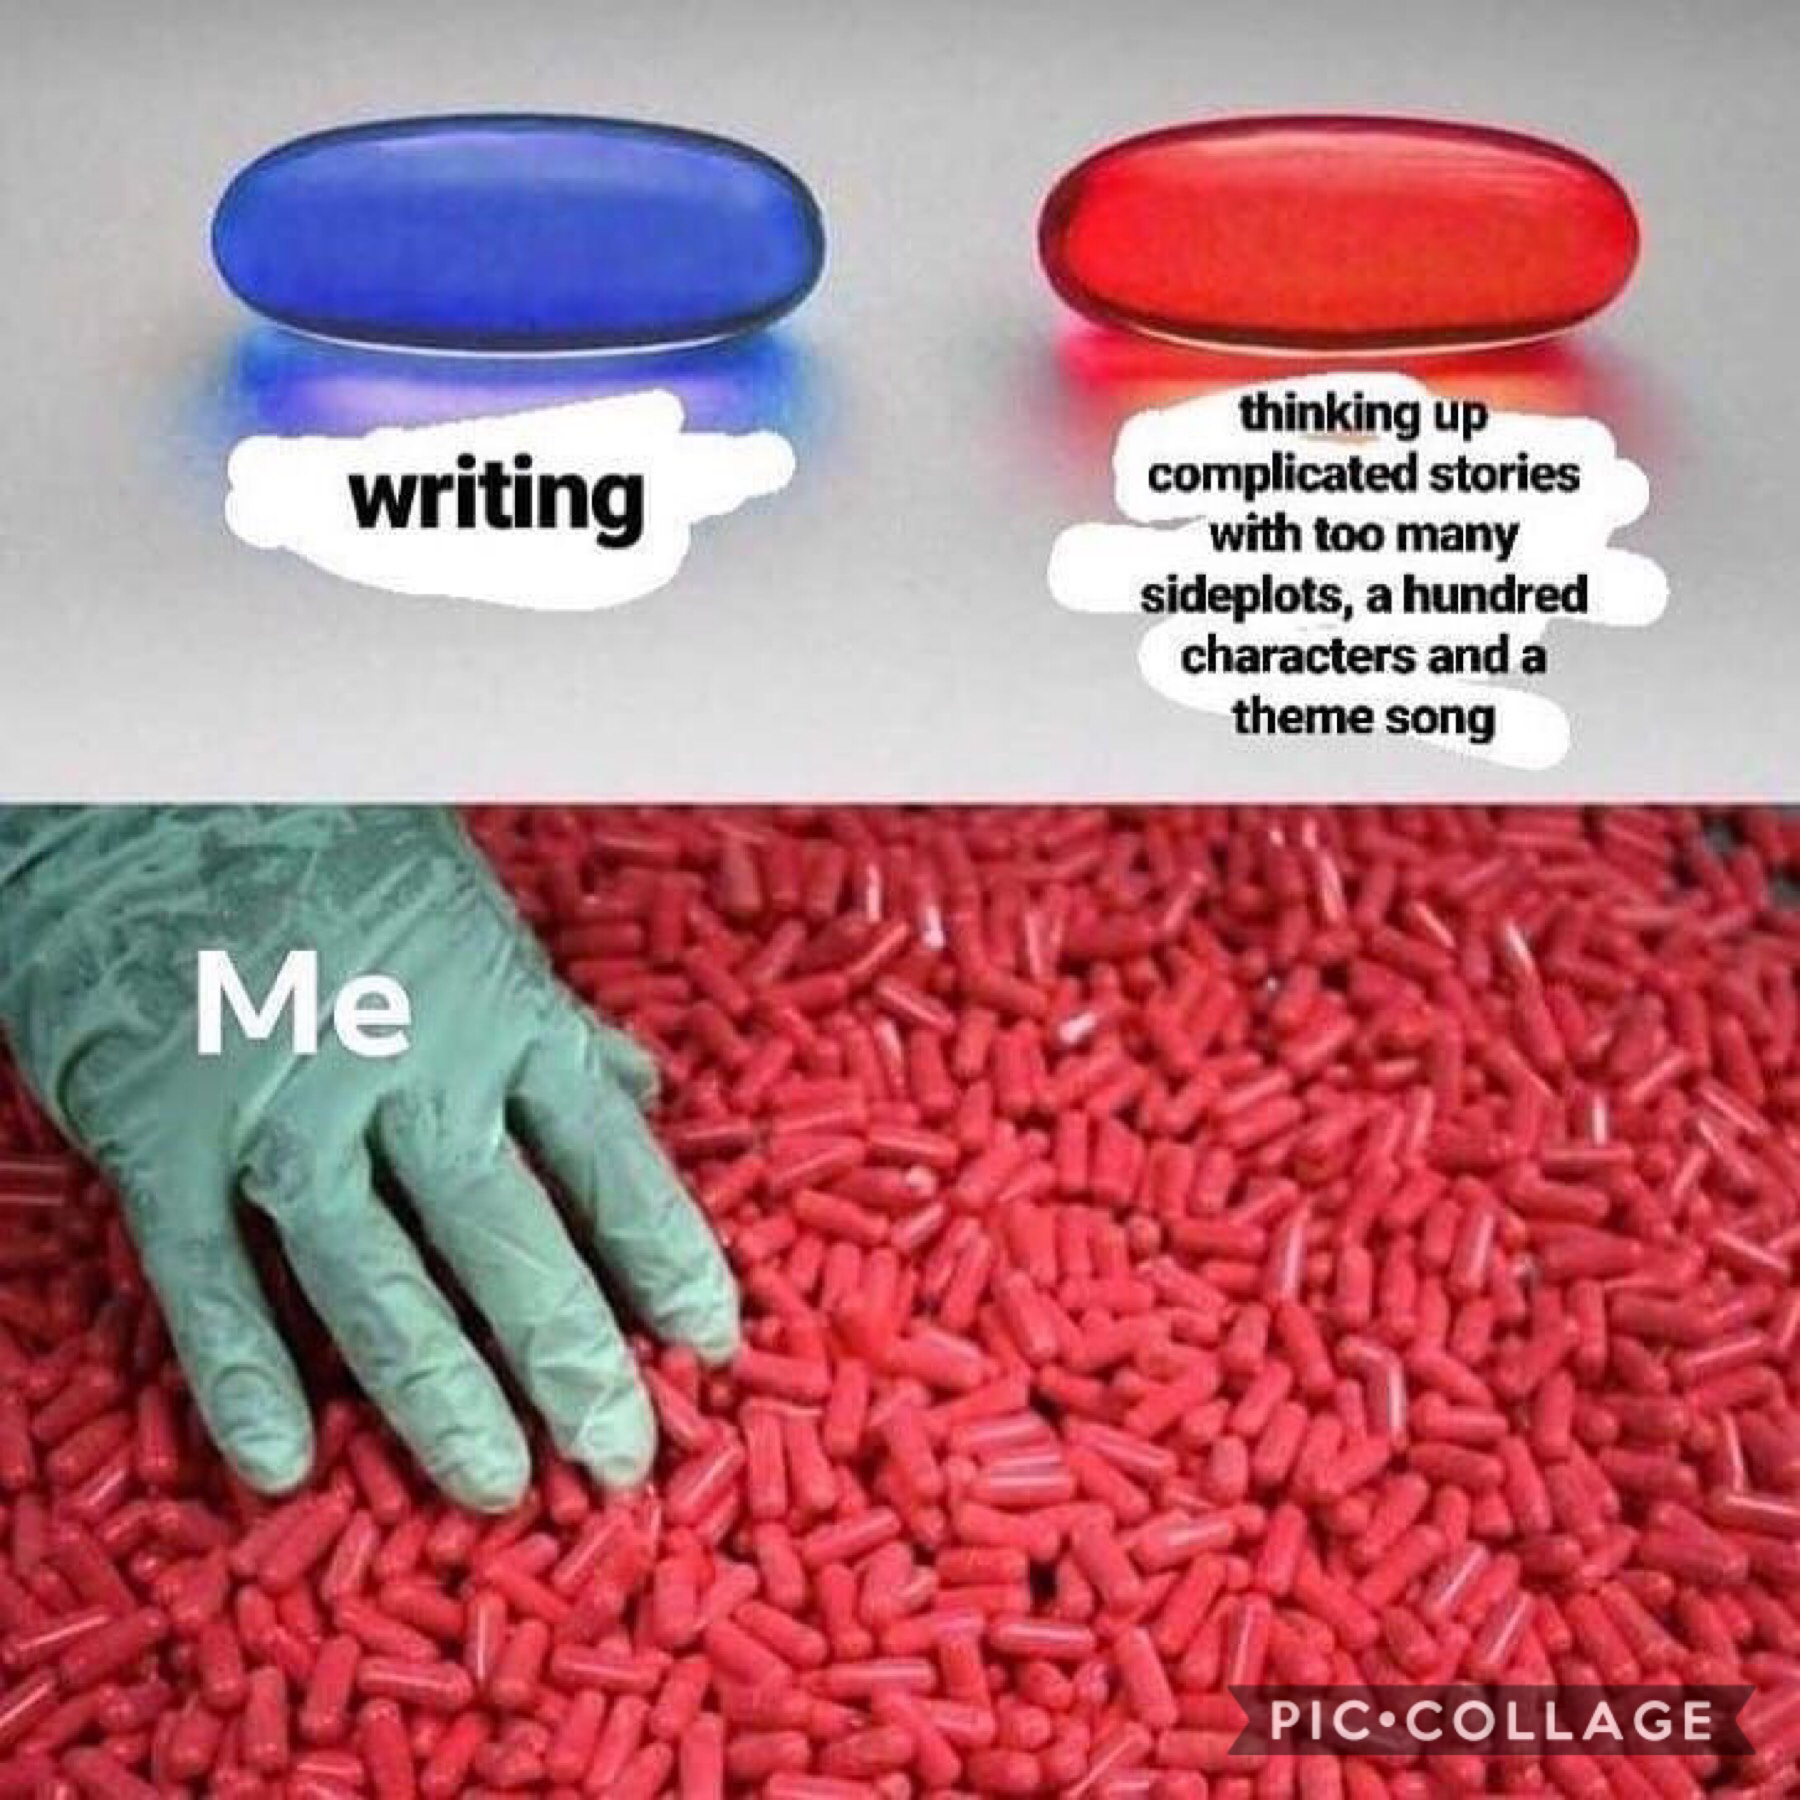 Me me me me absolutely me I have sooooooo many story ideas that are actually decent but have so many plotholes and such it's annoying